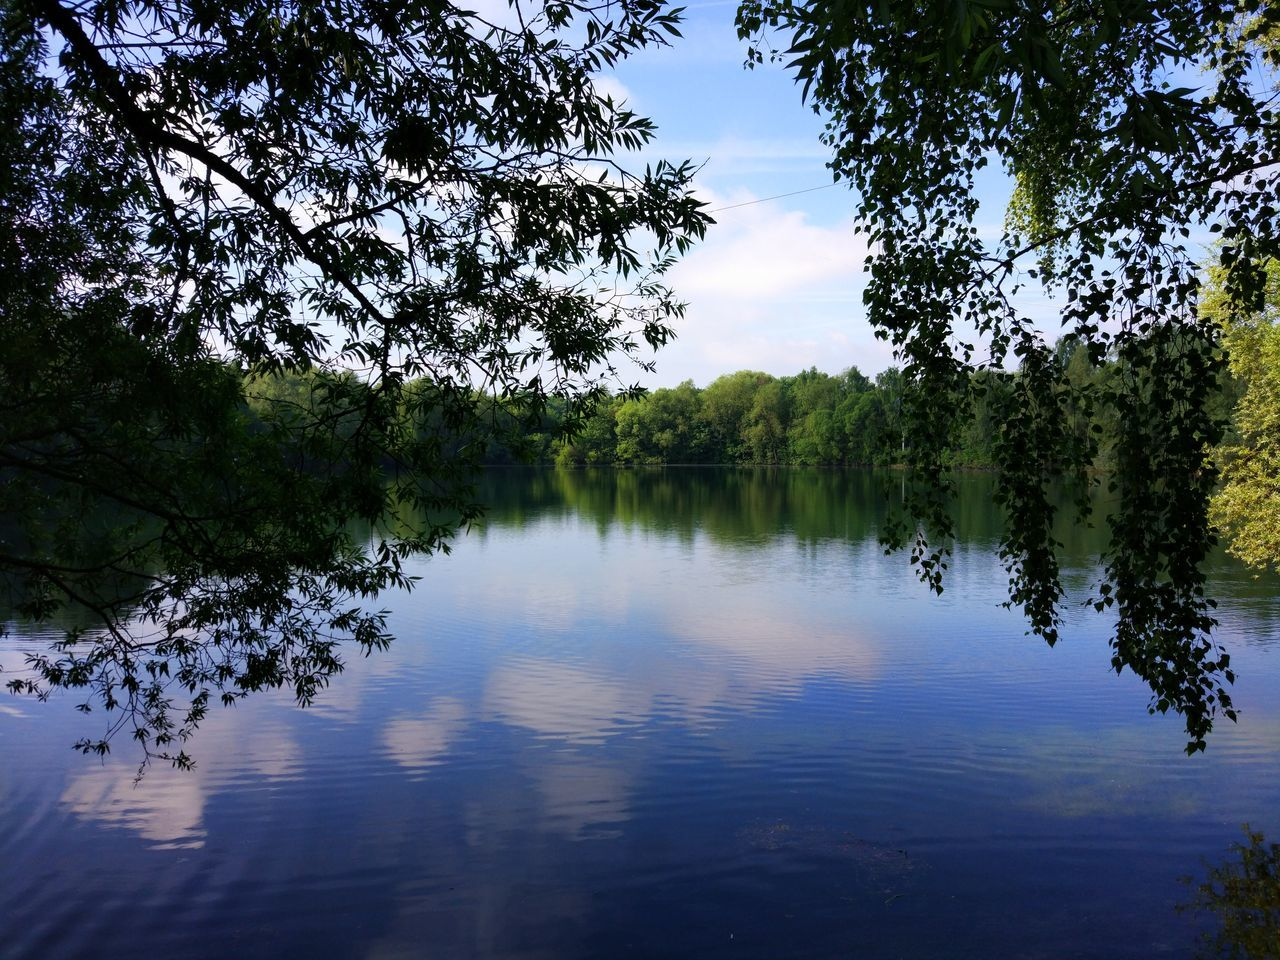 Einfach nur die Ruhe genießen Reflection Tree Water Lake Nature Outdoors Sky Beauty In Nature No People Day Flood